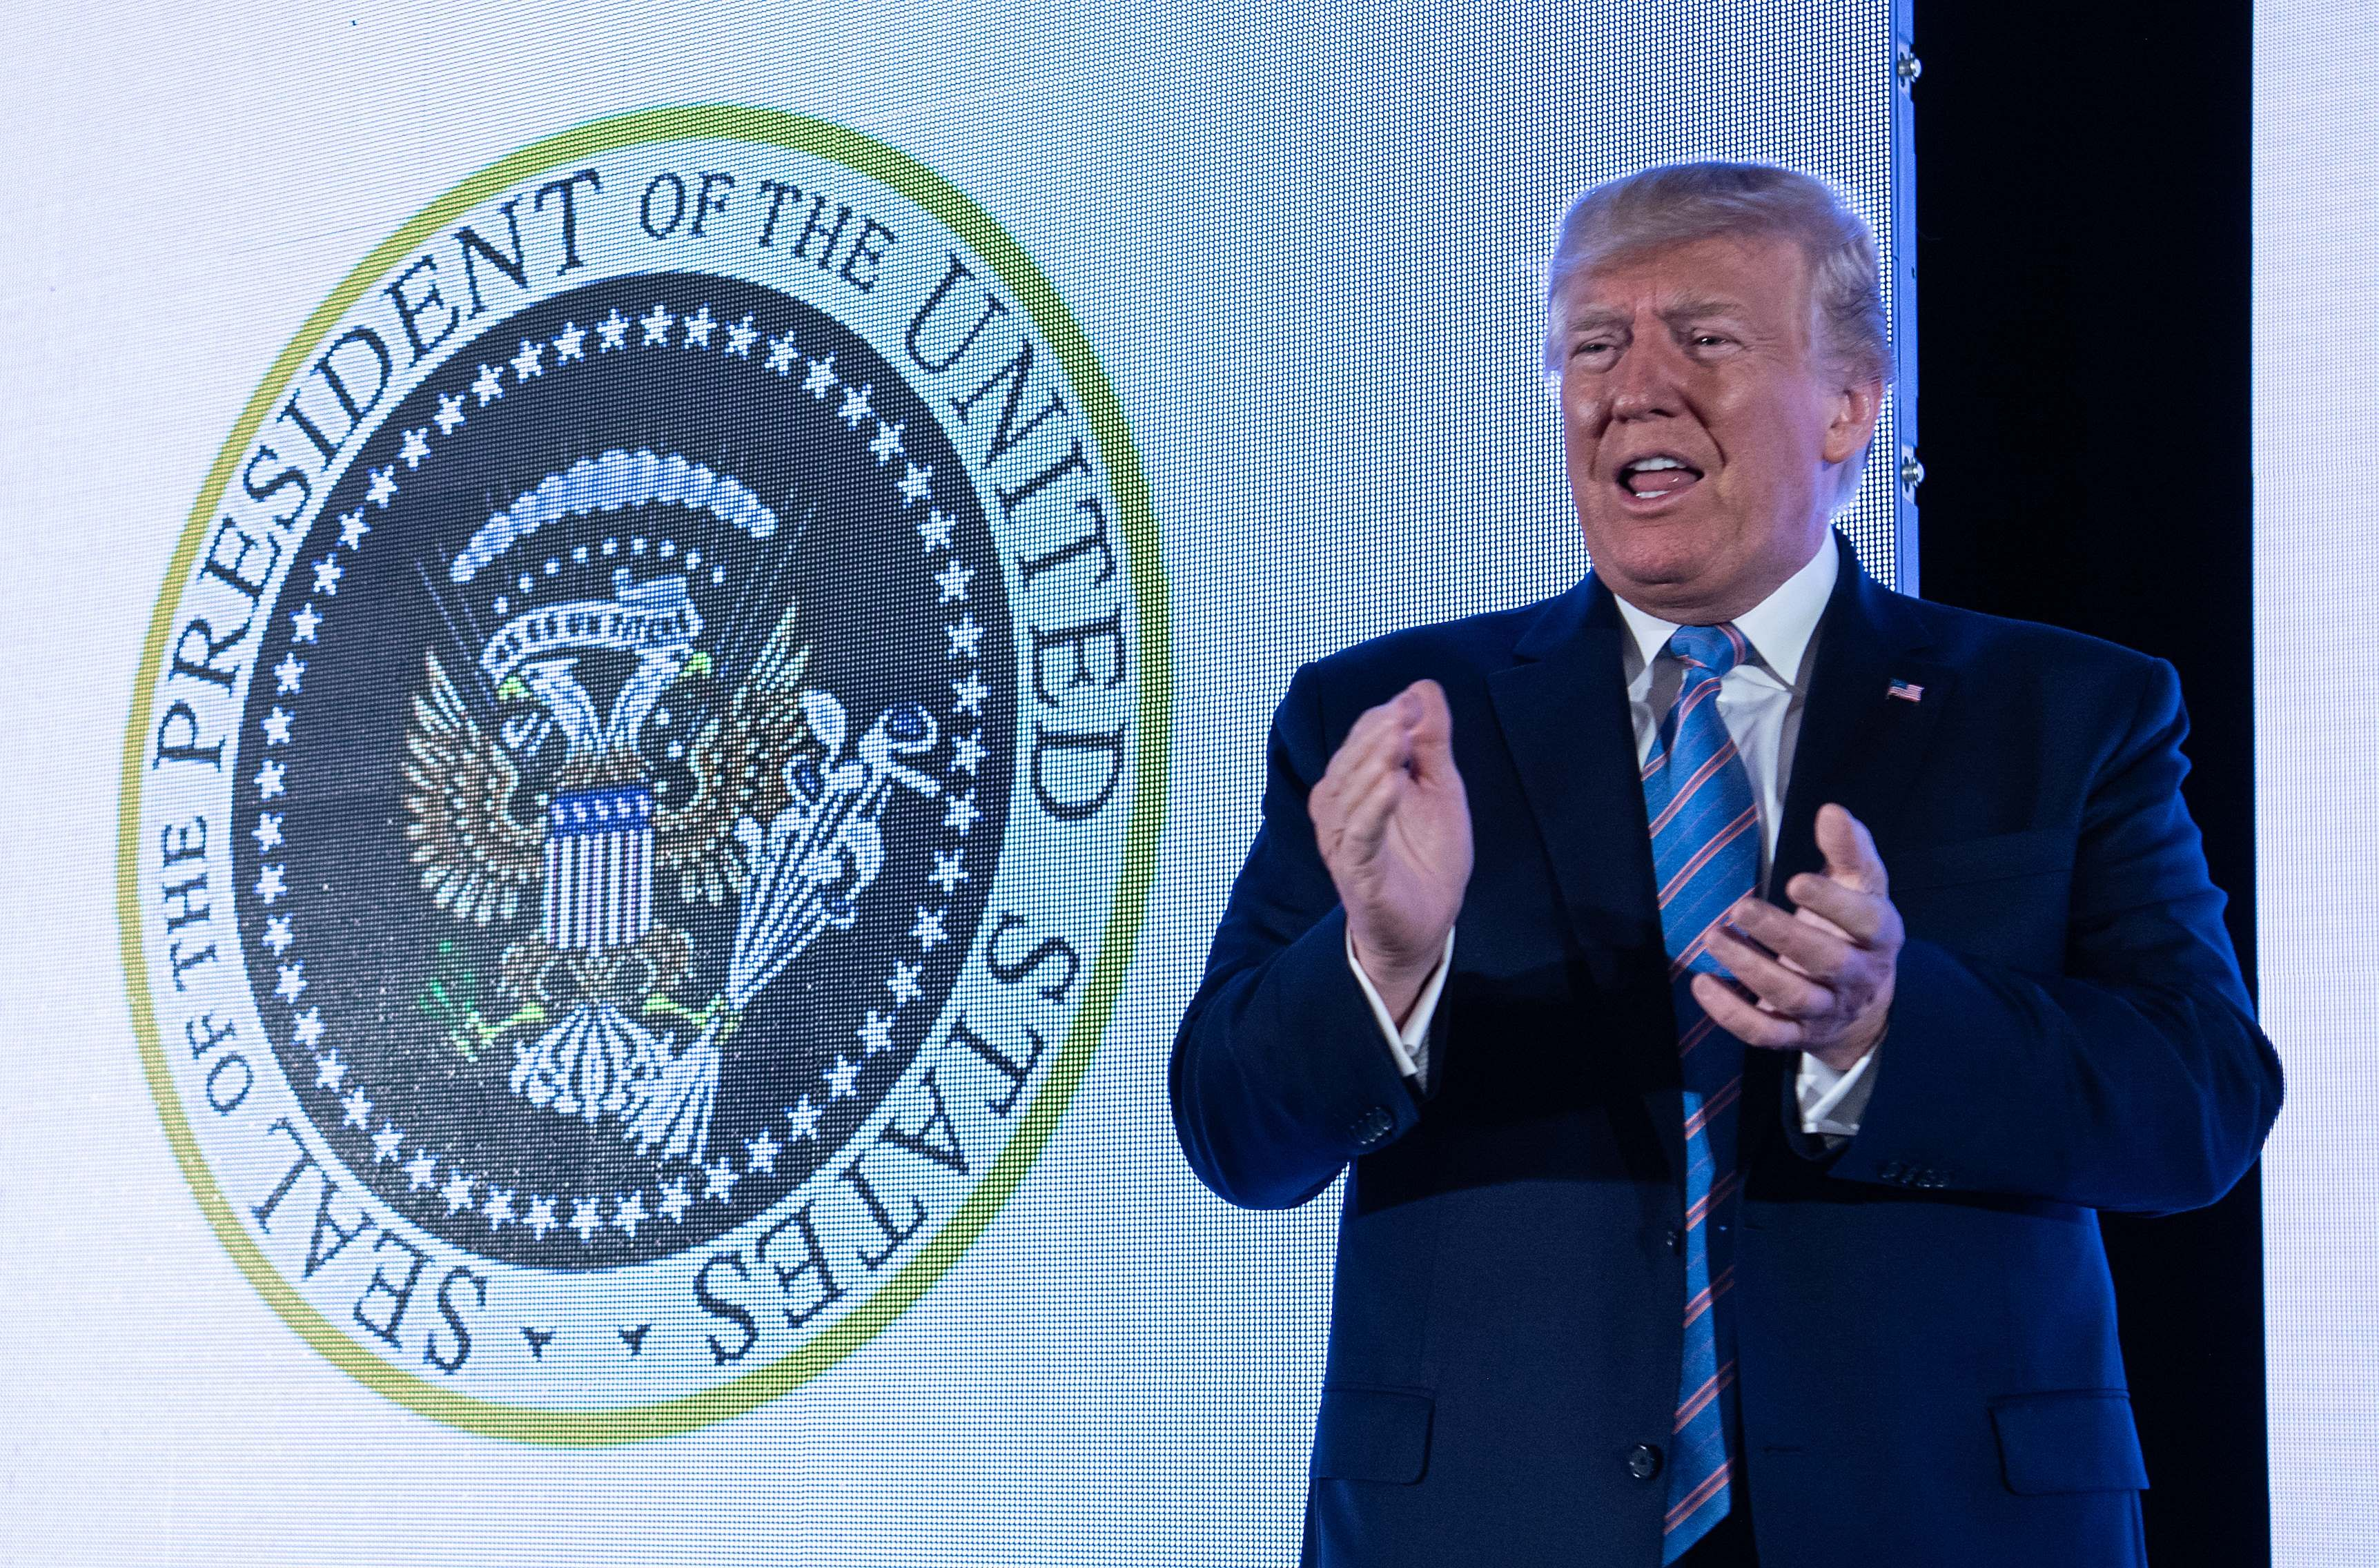 Donald Trump Gave A Speech In Front Of A Fake, Russia-Inspired Presidential Seal